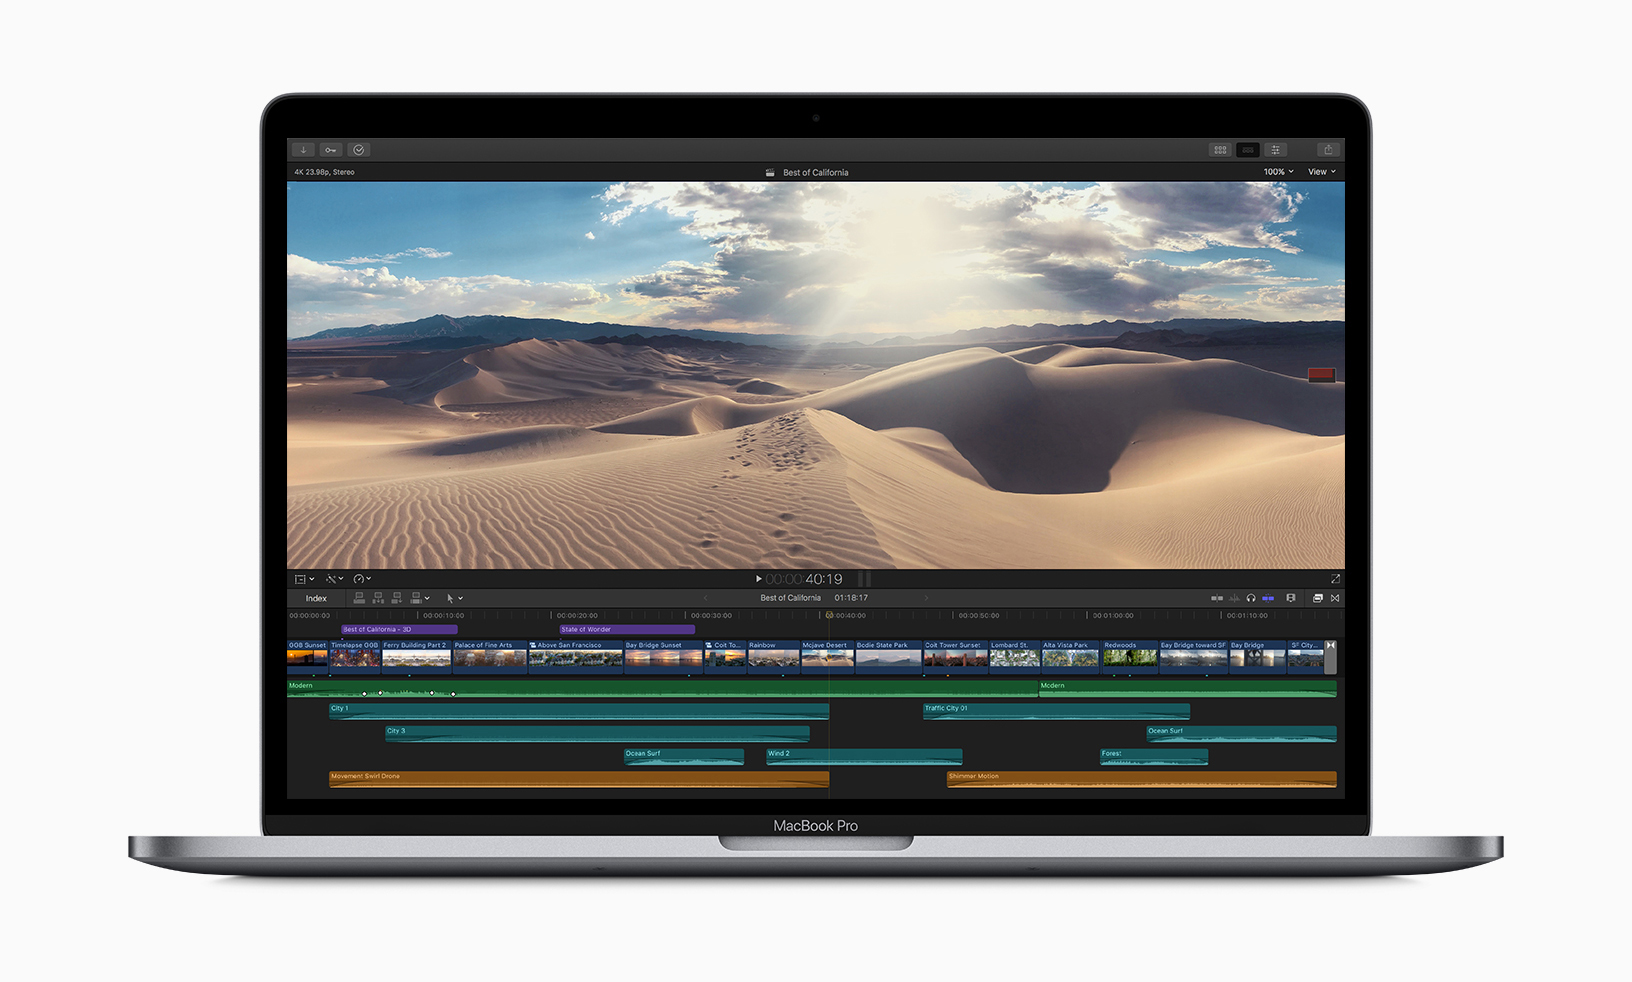 apple_macbookpro-8-core_video-editing_05212019_big.jpg.large_2x